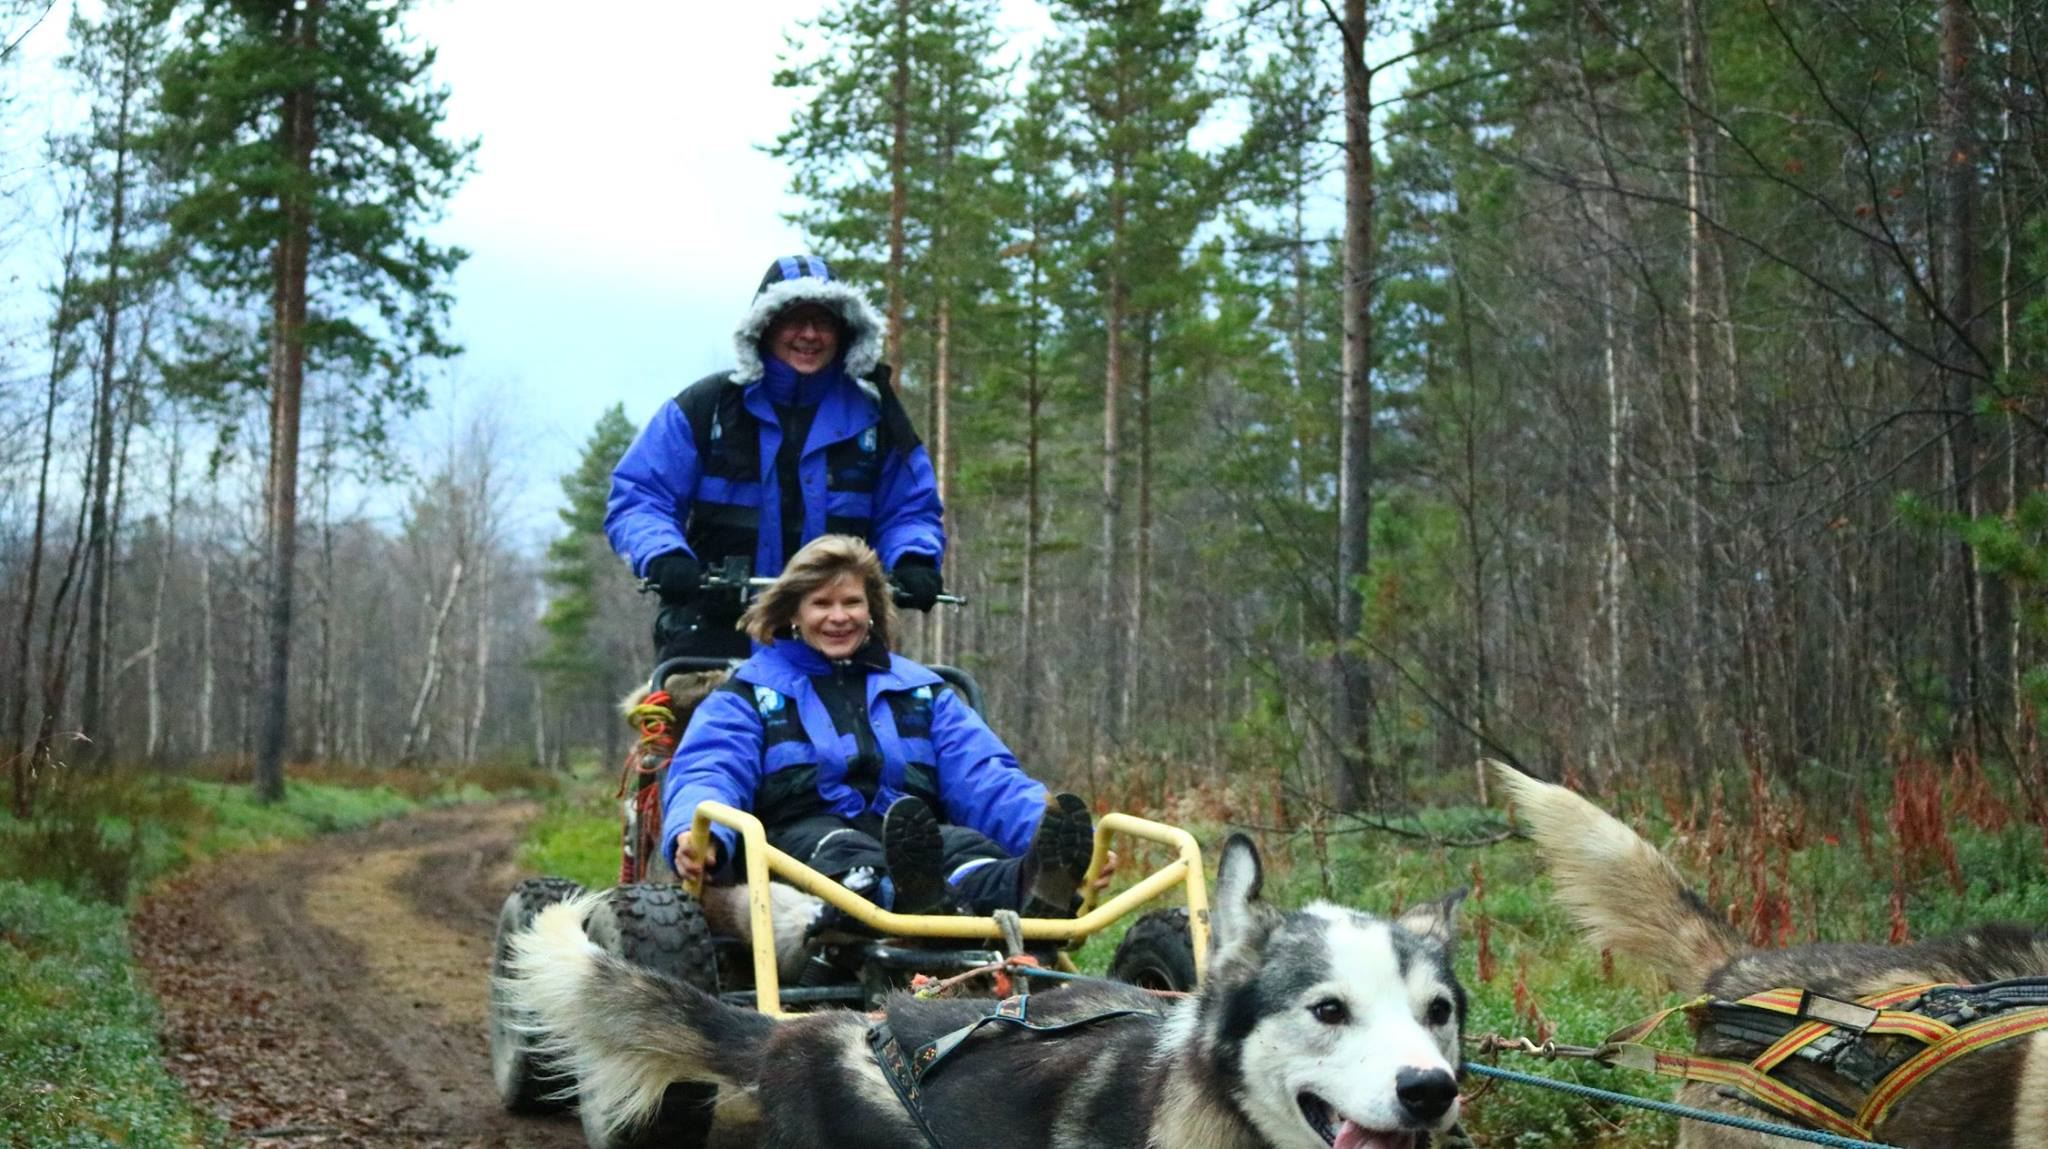 Wagon tour with huskies